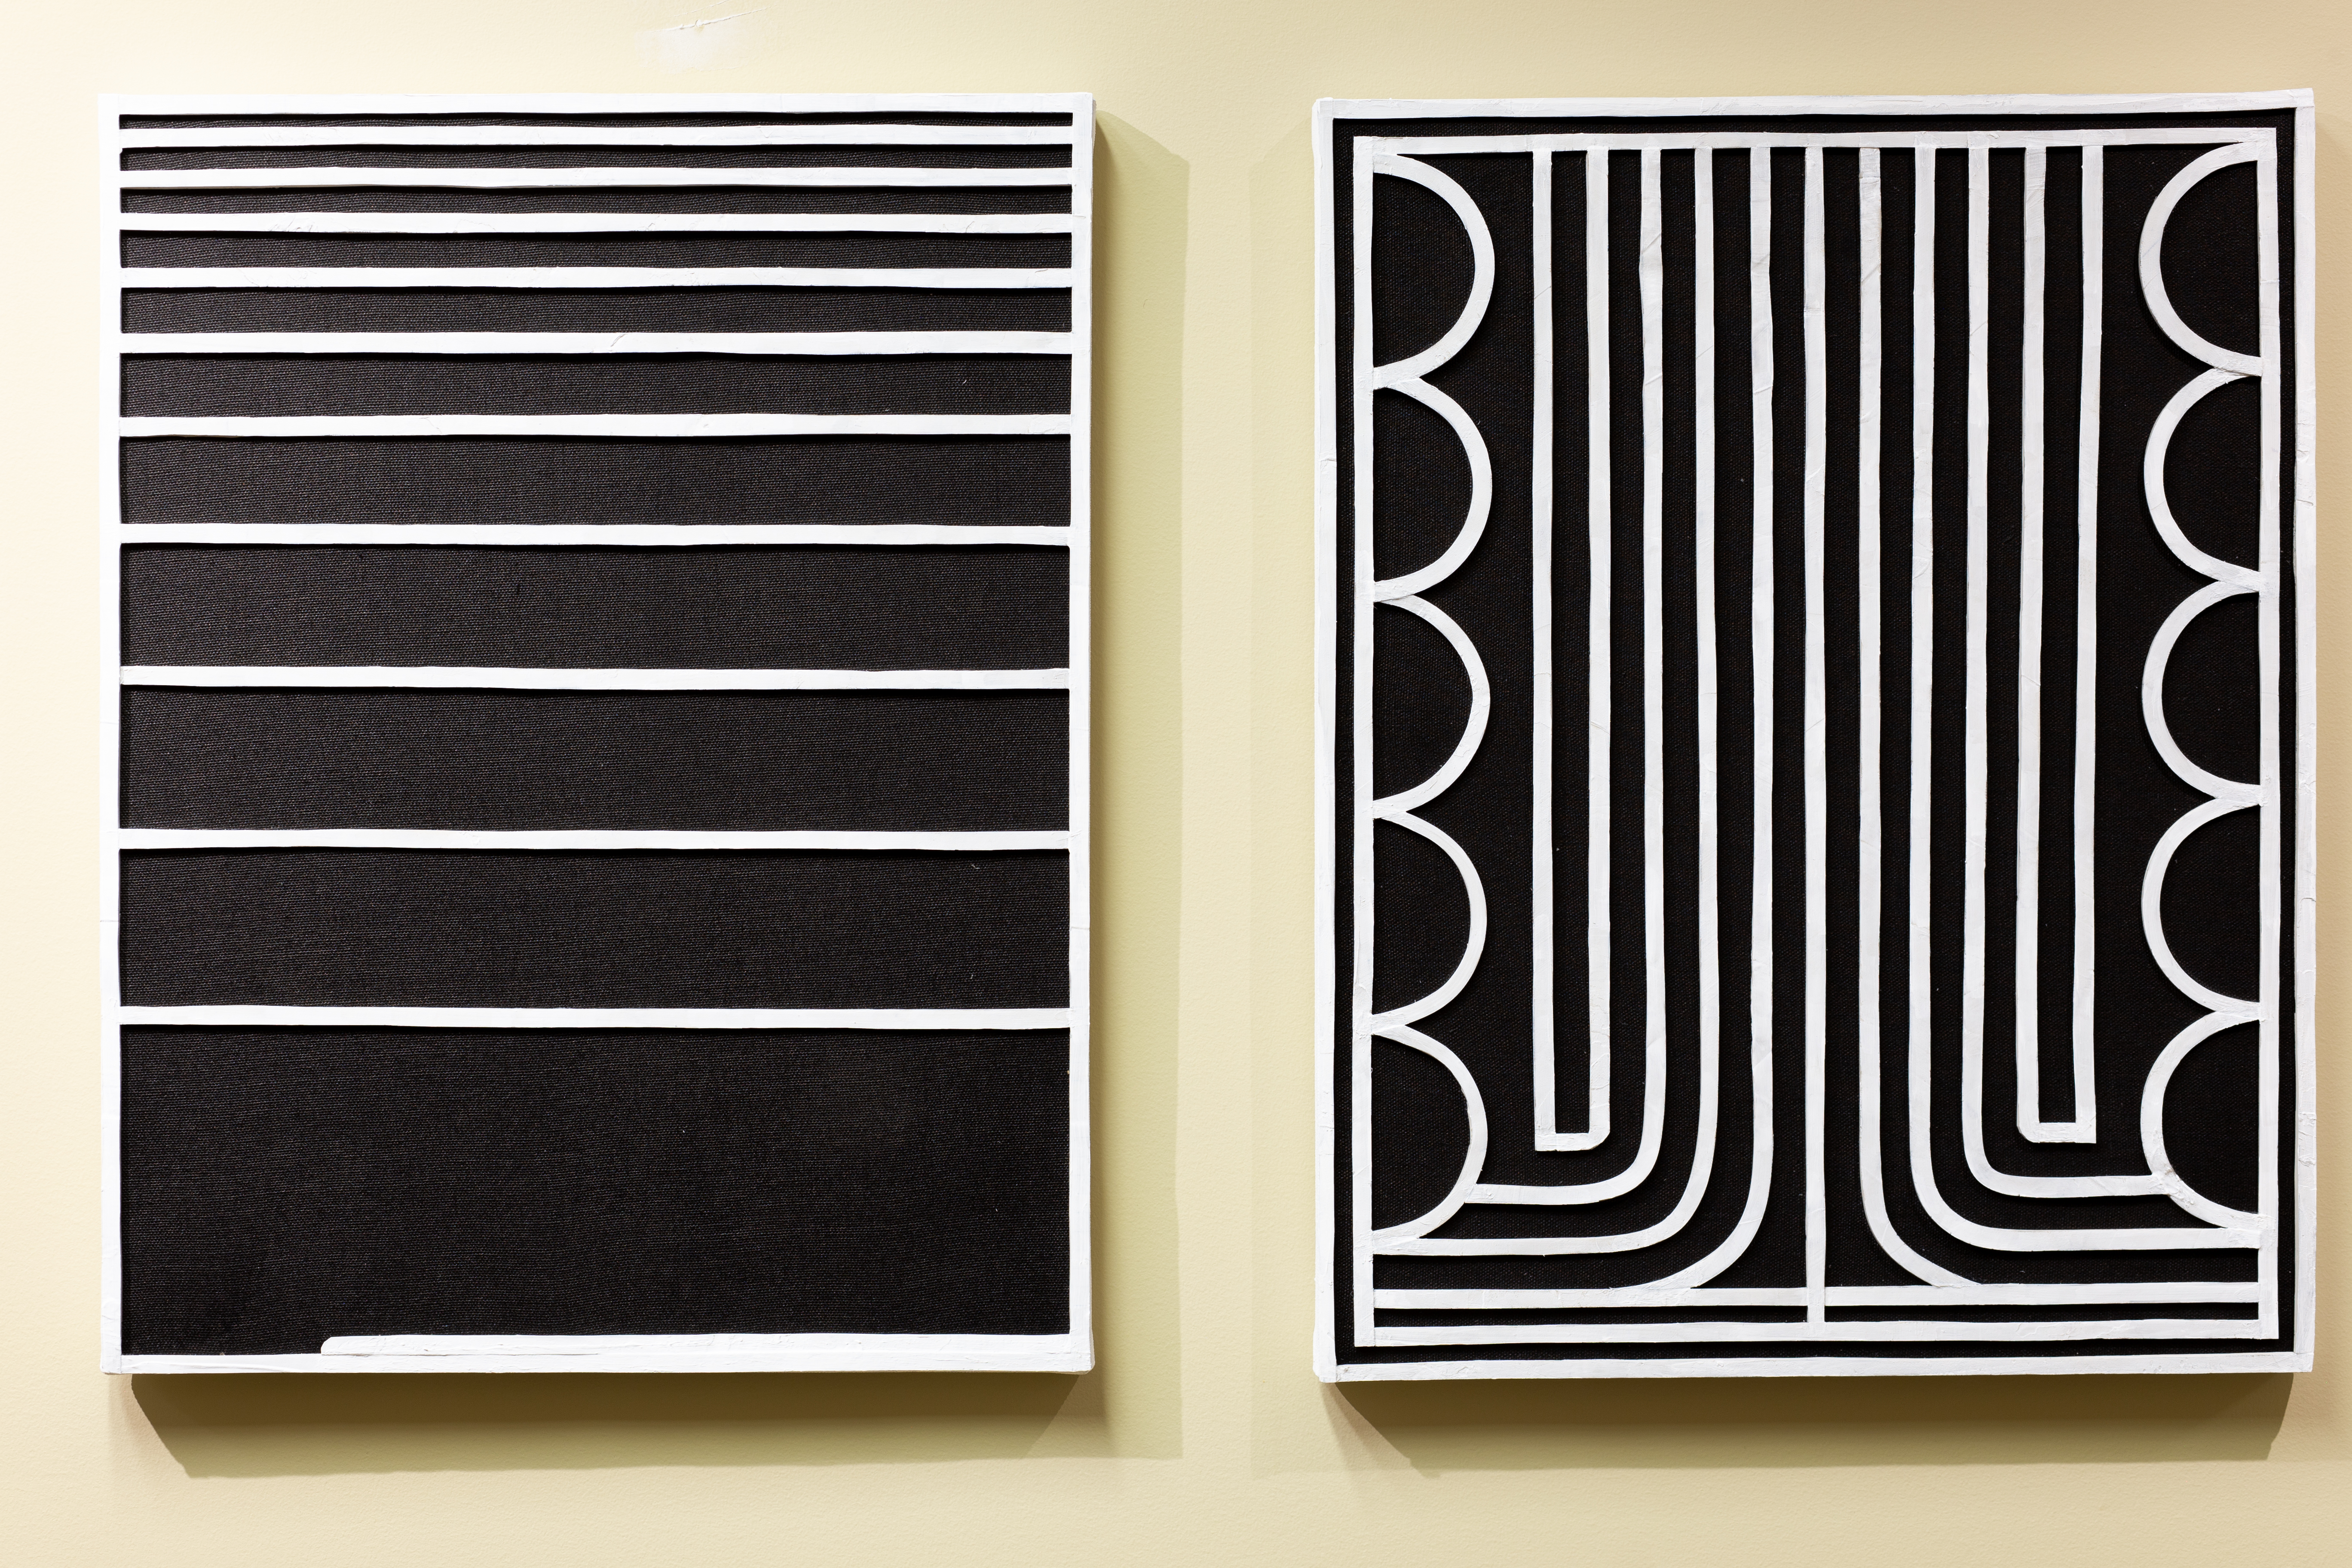 """Eric Cagley, 2, 18"""" x 14"""", dimensional acrylic on stained linen, 2018 (L), 1, 18"""" x 14"""", dimensional acrylic on stained linen, 2018"""